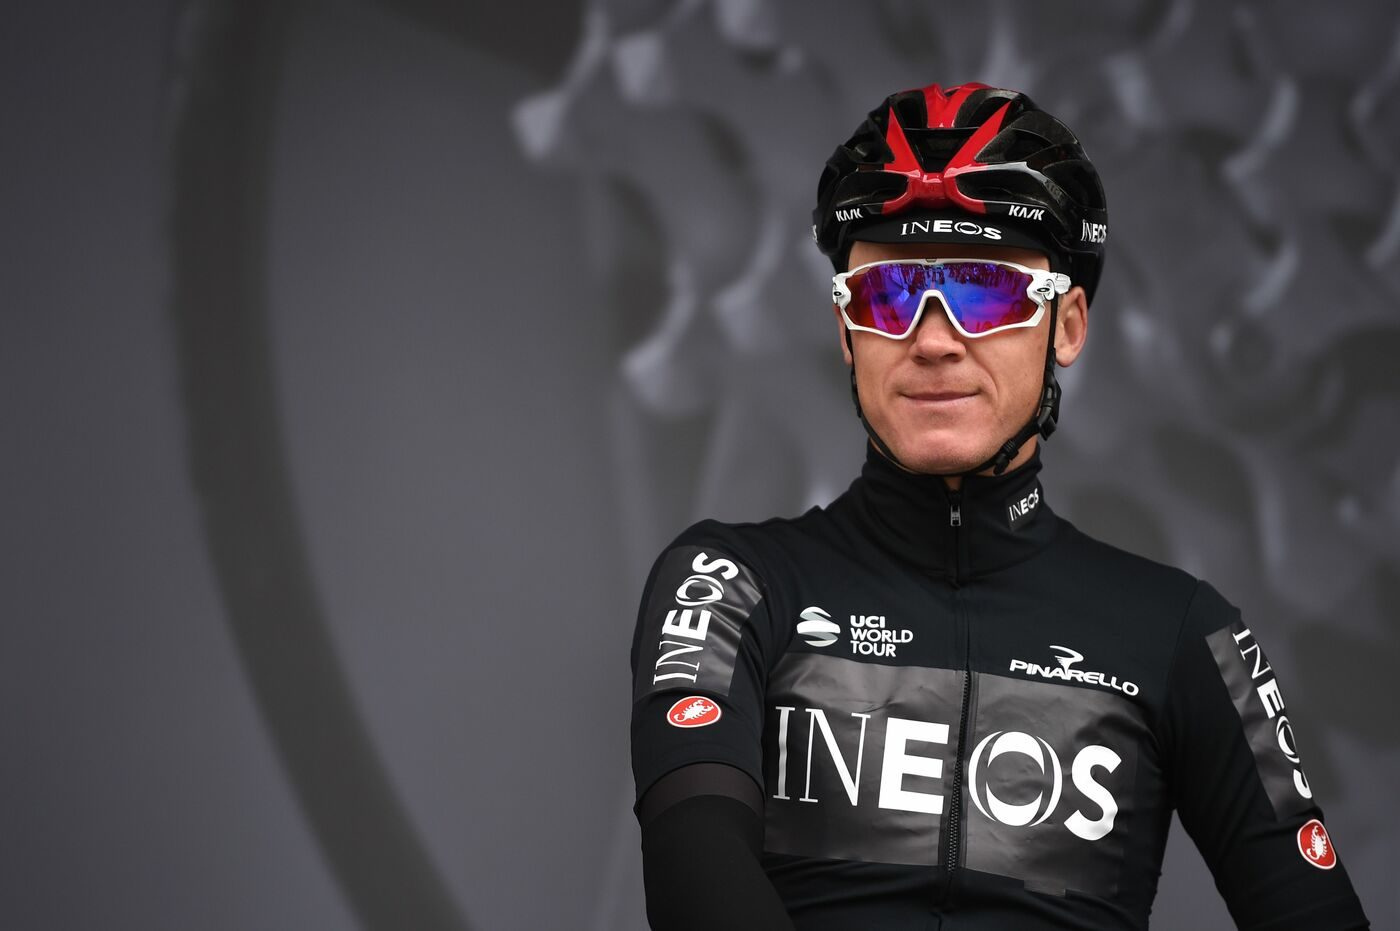 Chris Froome salta il Tour de France